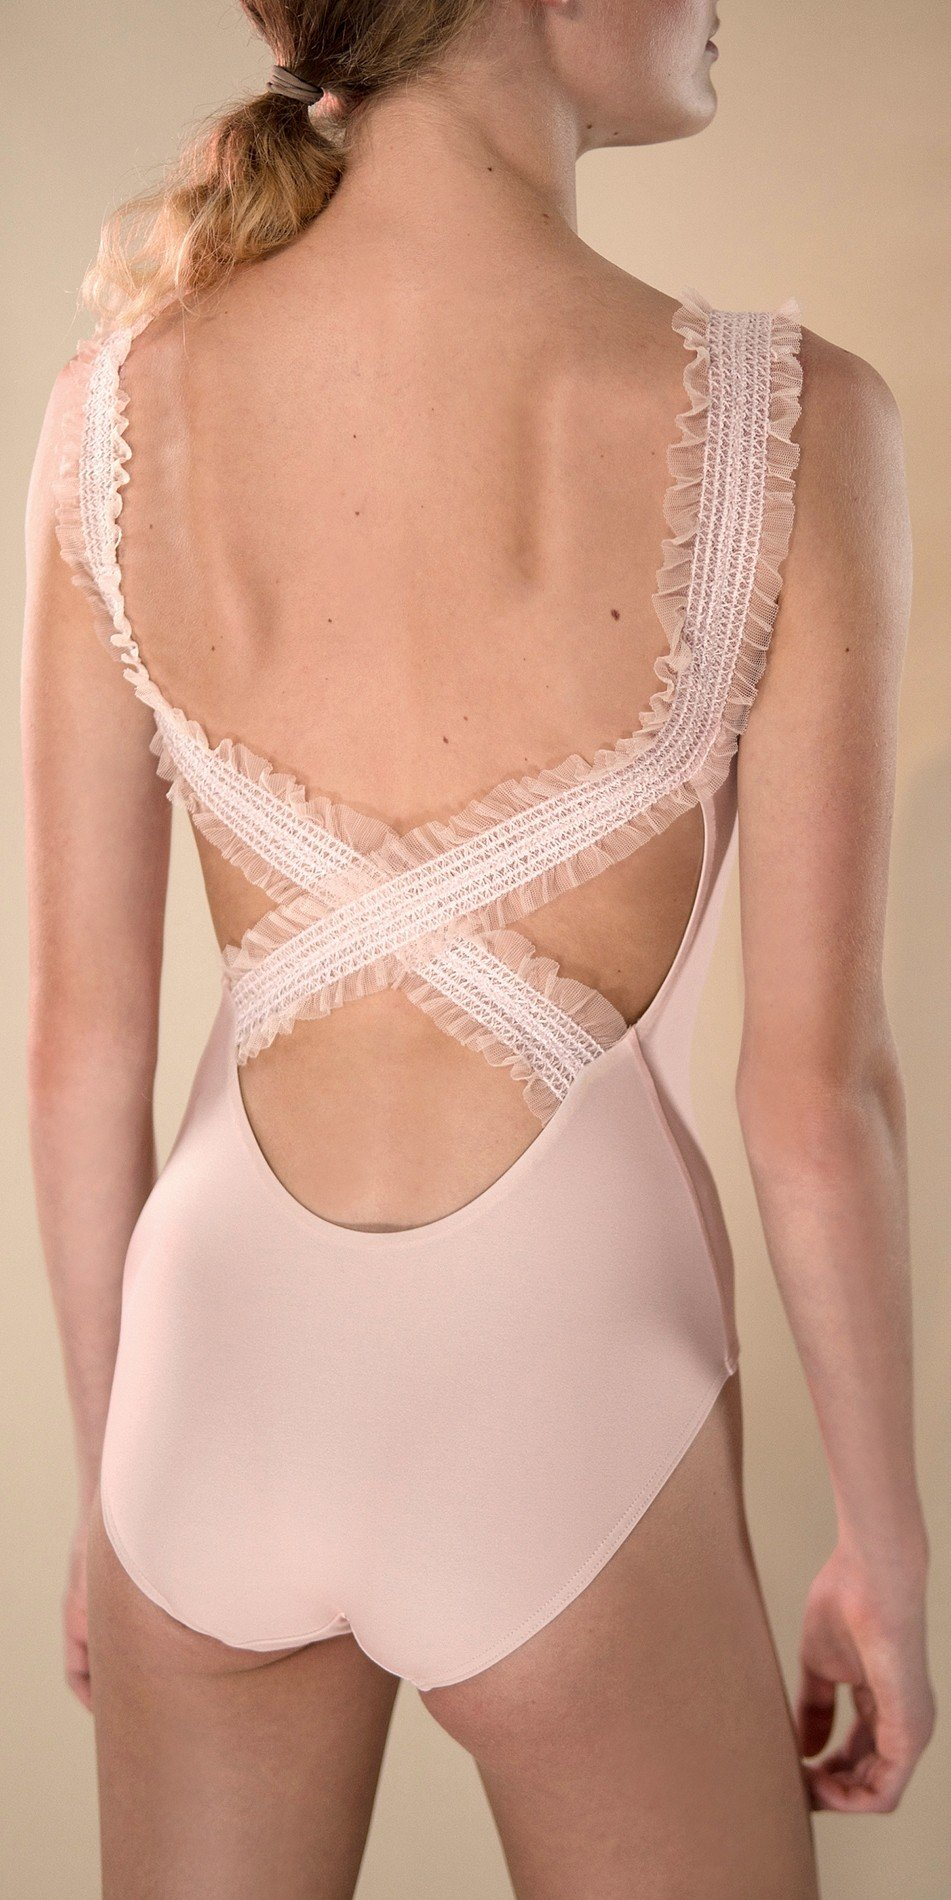 ELEANORE cross back leotard blush 2 r 2